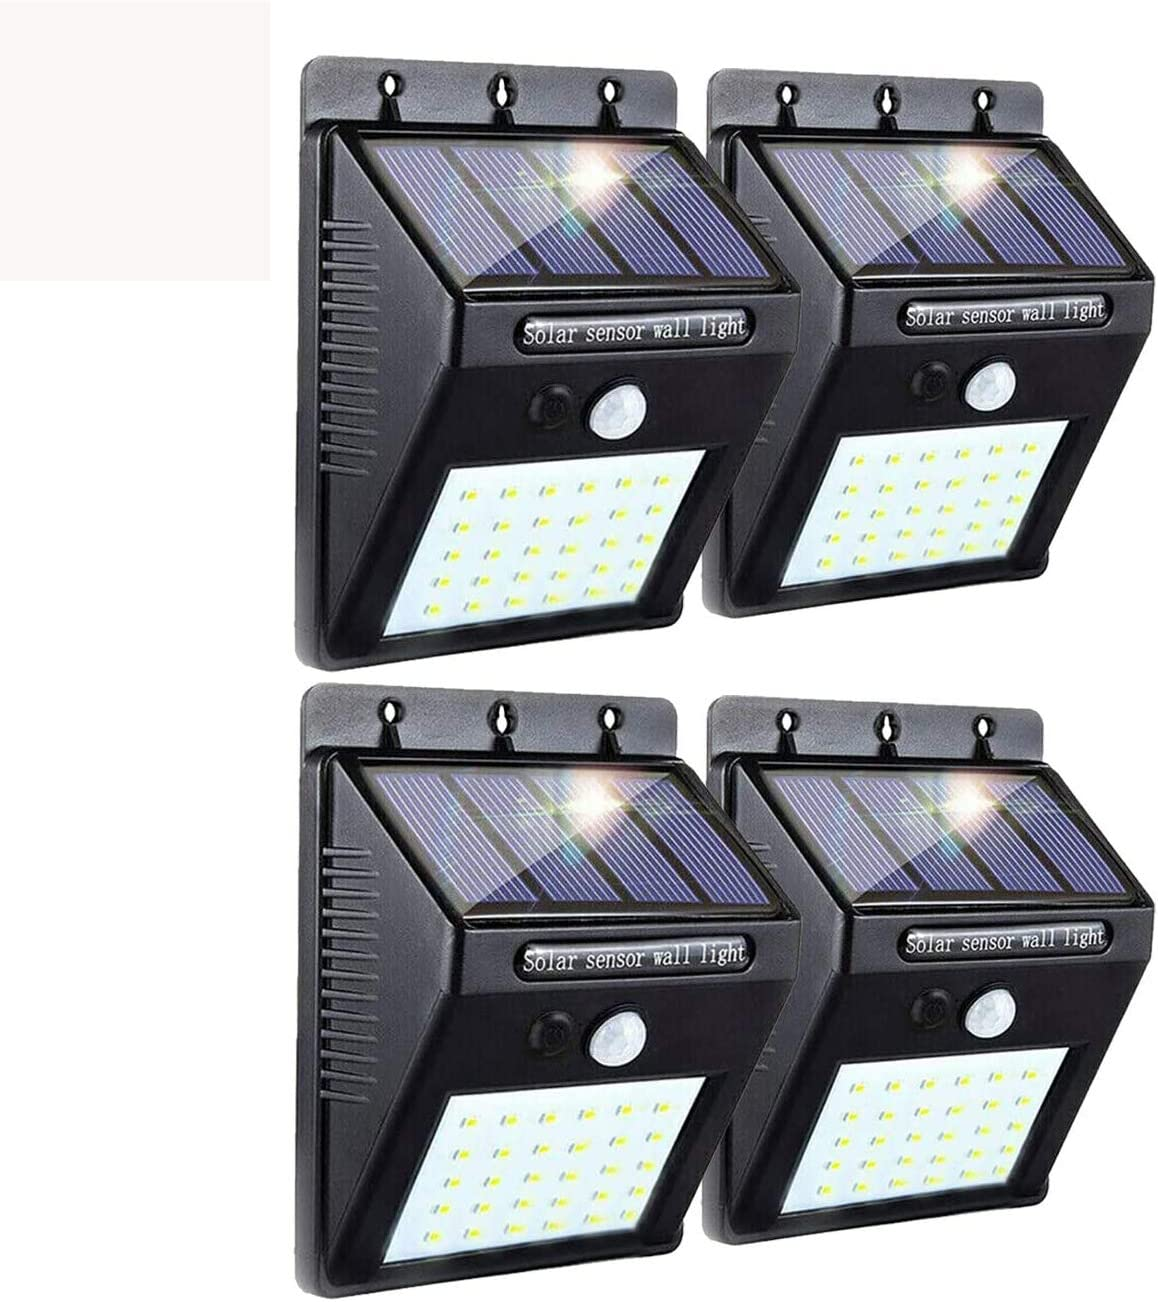 WSgift 4 Pack Solar Wireless Motion Sensor Lights, 30 LED Flood Lights, IP65 Waterproof Wall Lights Security Lights for Outdoor Garden, Patio, Yard, Deck, Garage, Driveway, Fence Easy-to-Install